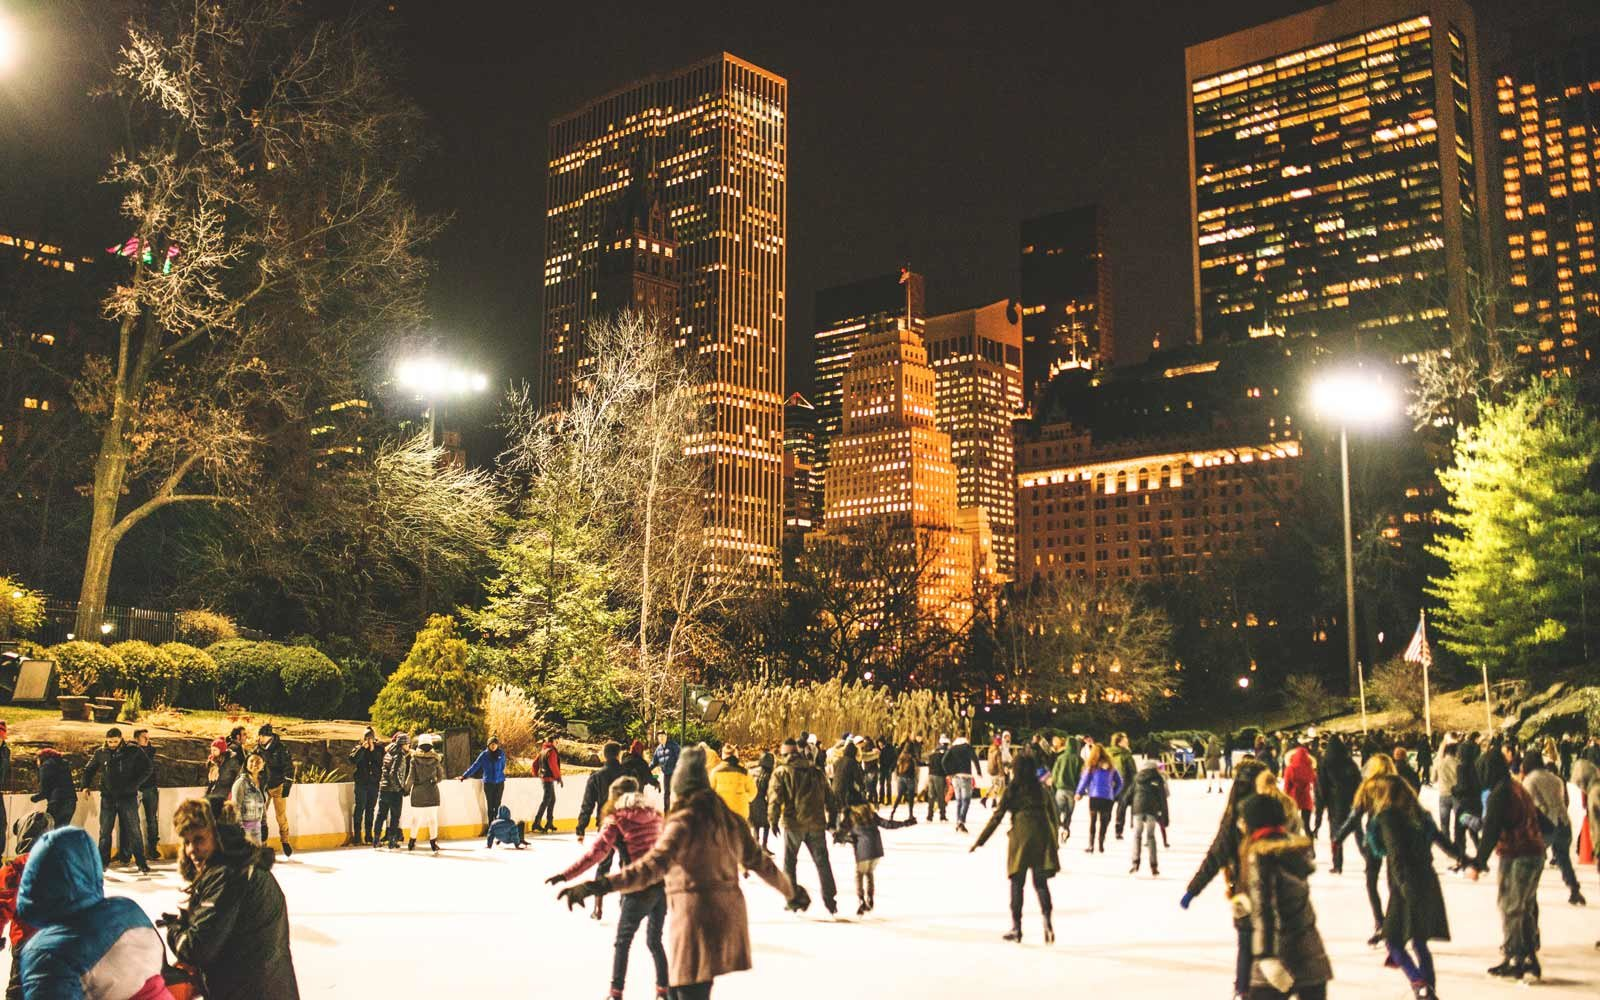 Ice skating in Central Park, New York City